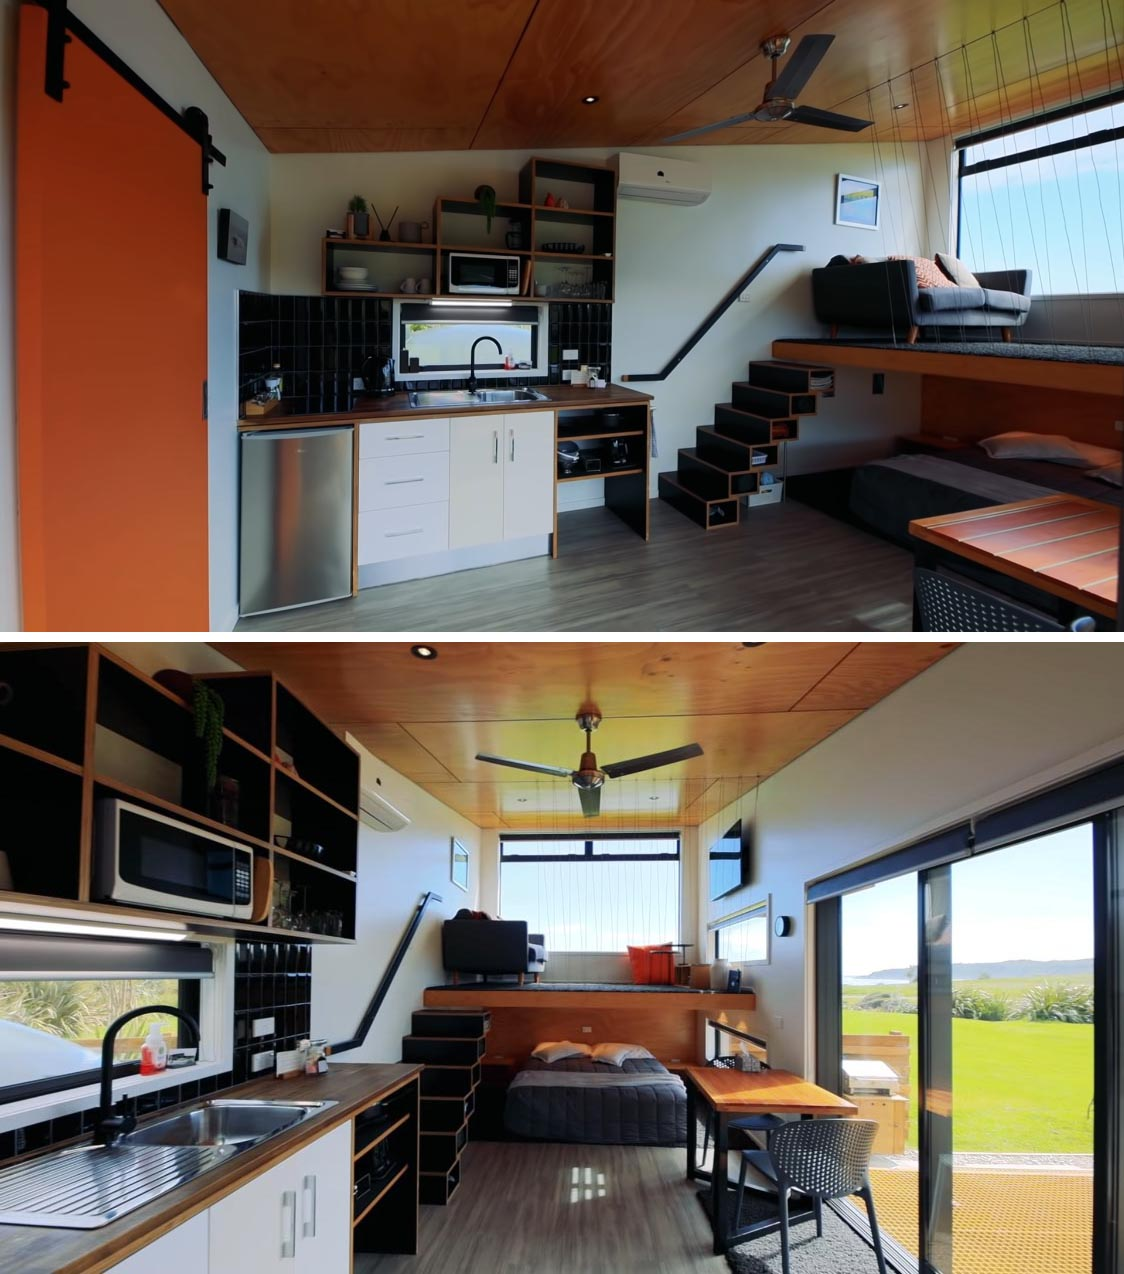 This modern tiny home has a small kitchen, a bathroom, a lofted living room, and an open sleeping area.